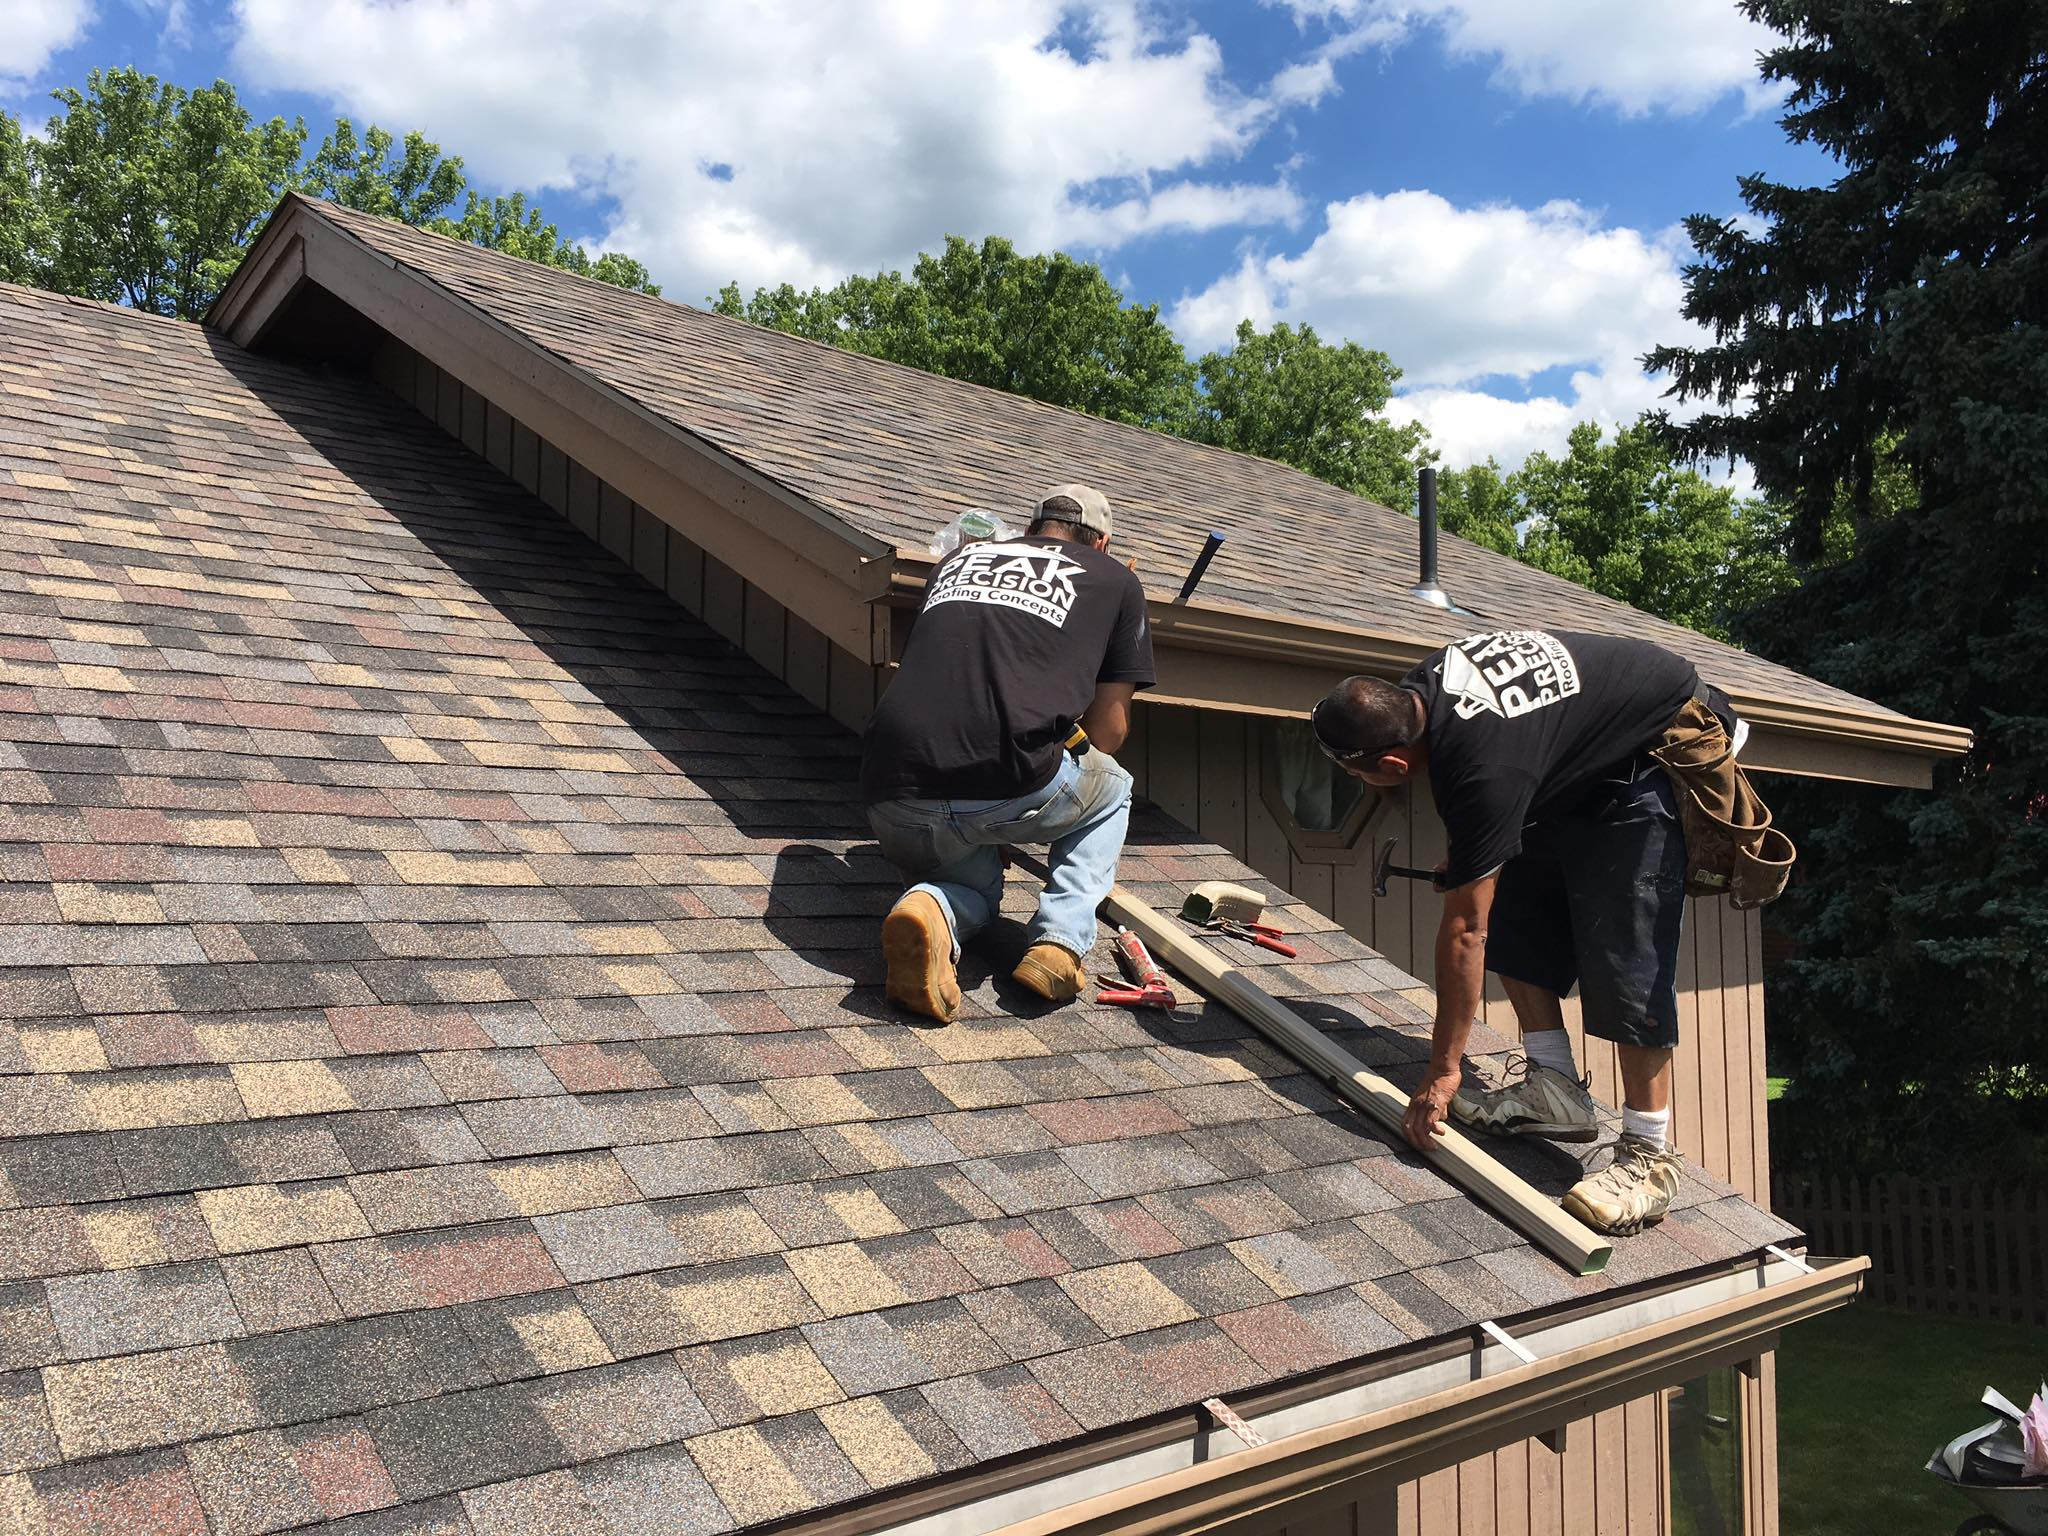 Wind damaged roof repair Pittsburgh-PA; Pittsburgh-PA roof repair experts; roof repair near me; Pittsburgh-PA roofing contractors roofing roofs; emergency roof repairs Pittsburgh-PA